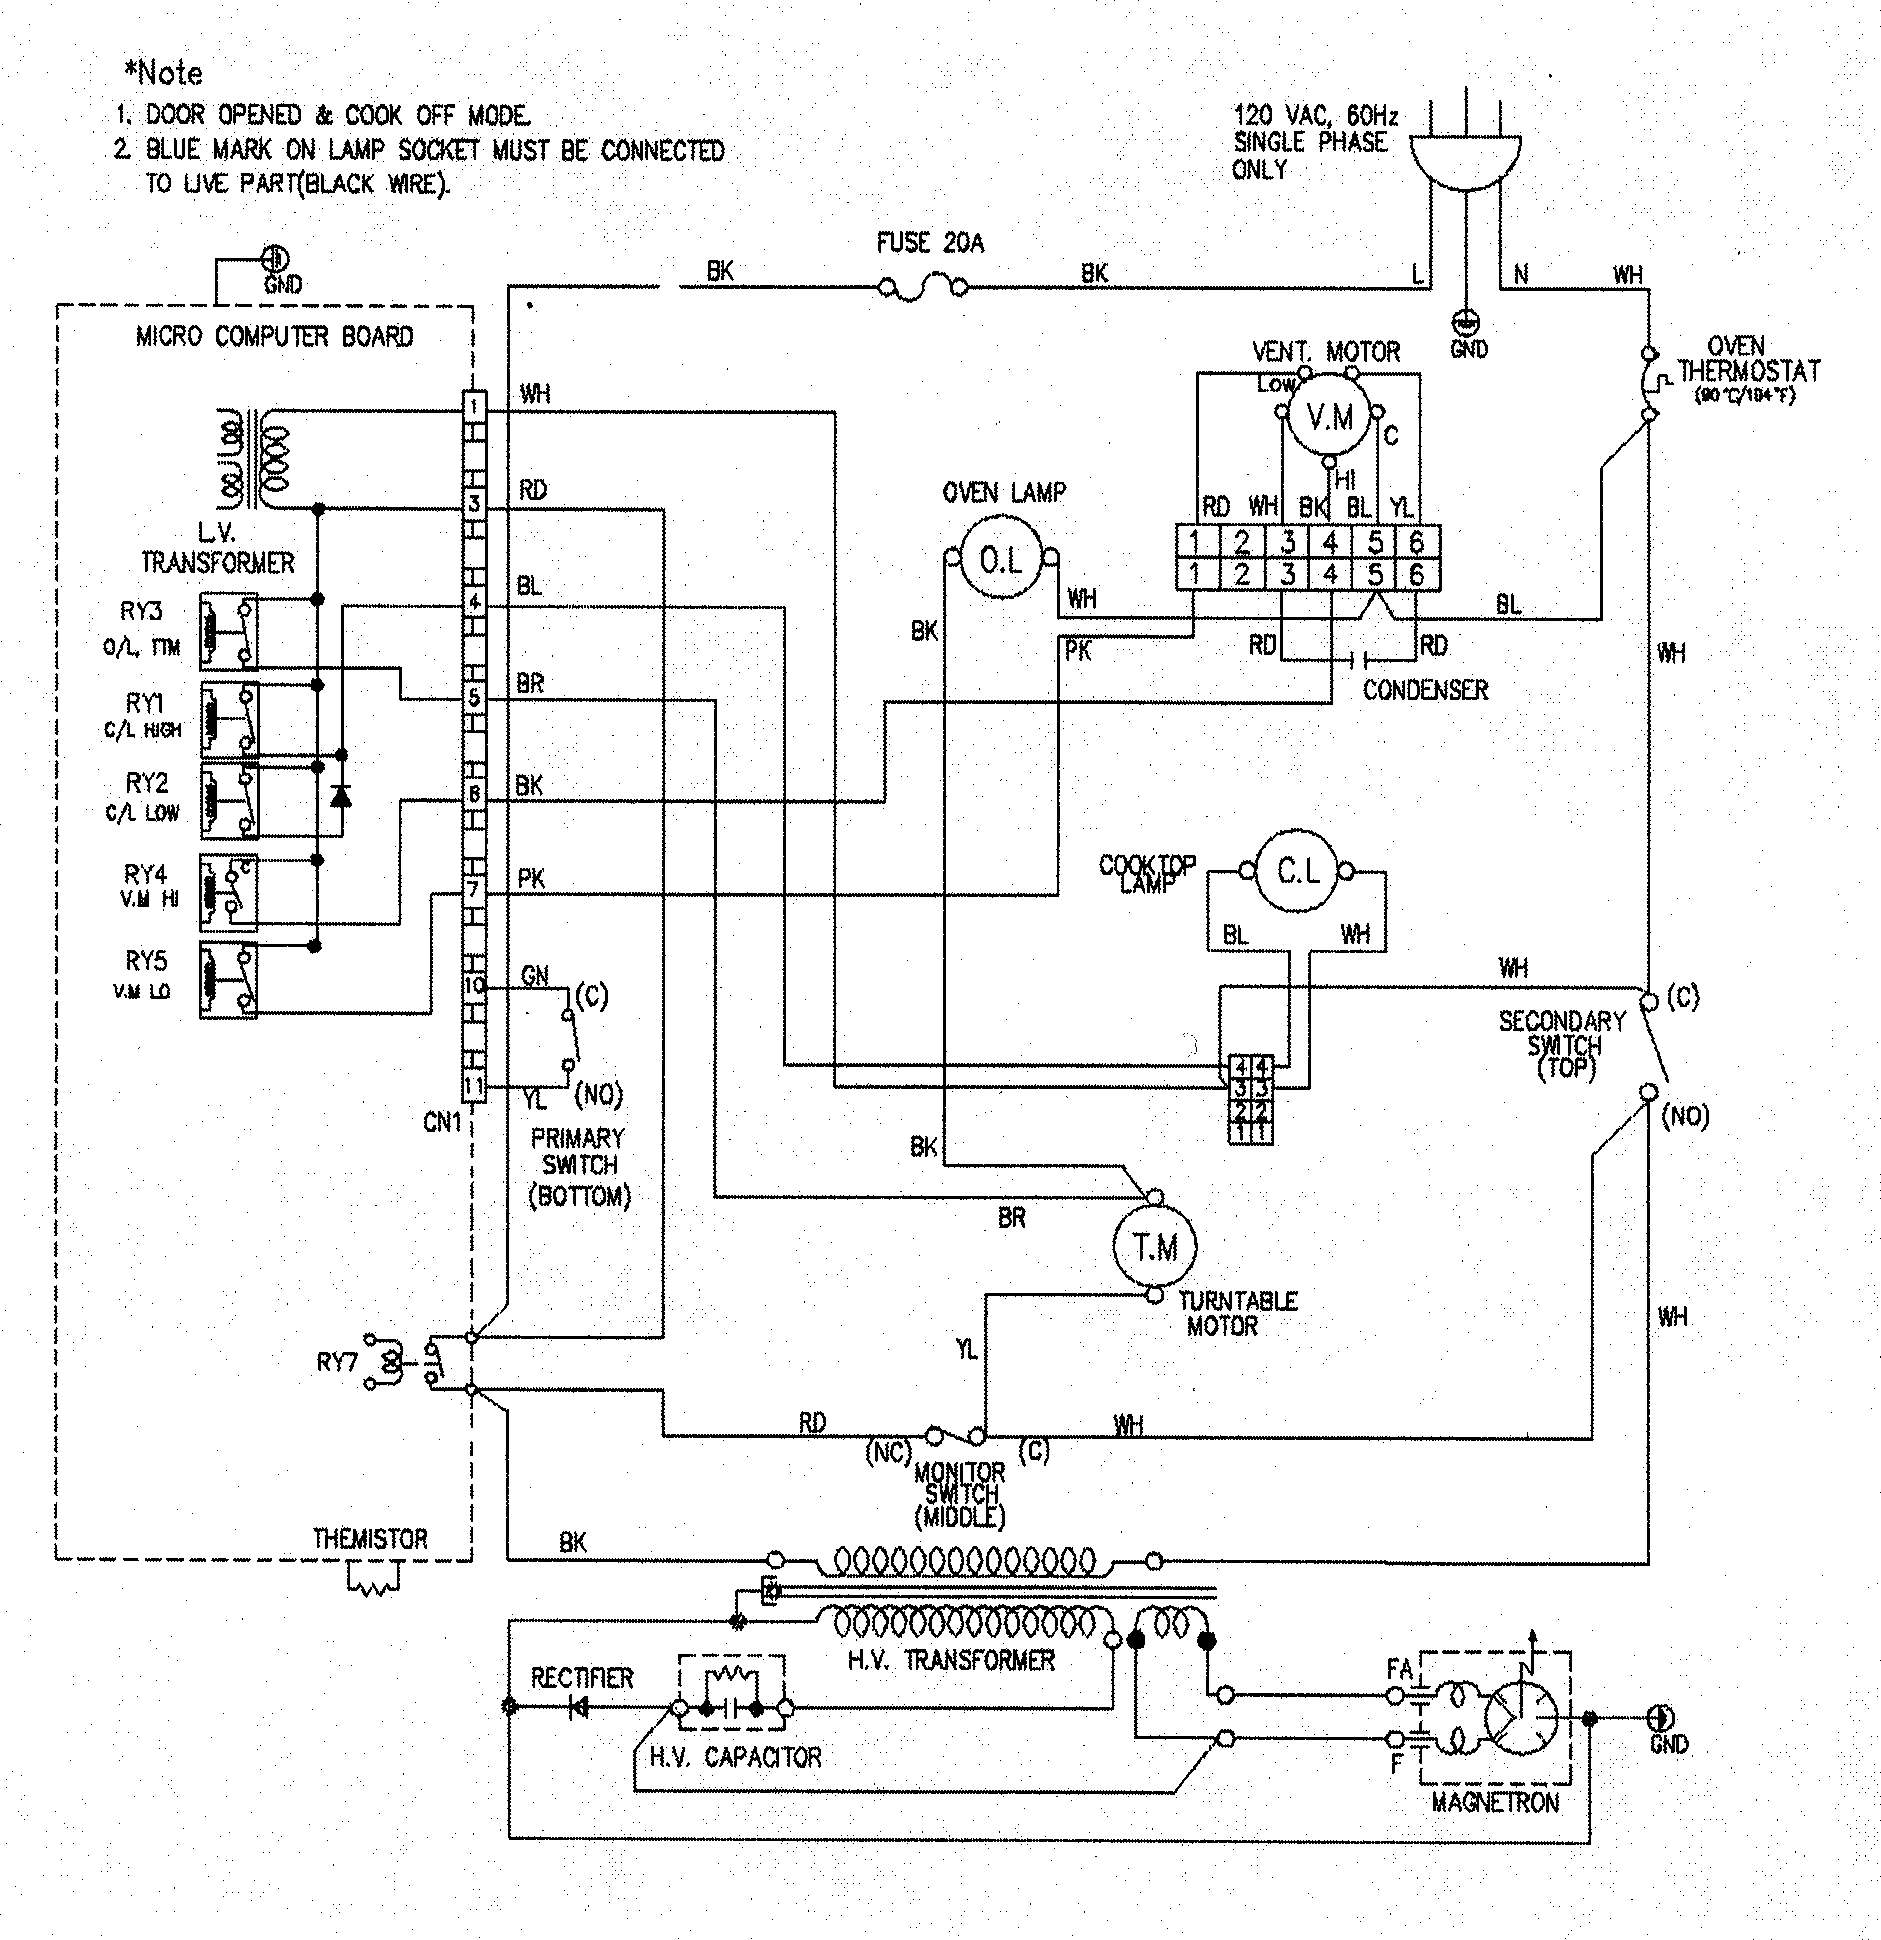 small resolution of microwave oven wiring diagram wiring diagram show for lg microwave oven wiring diagram